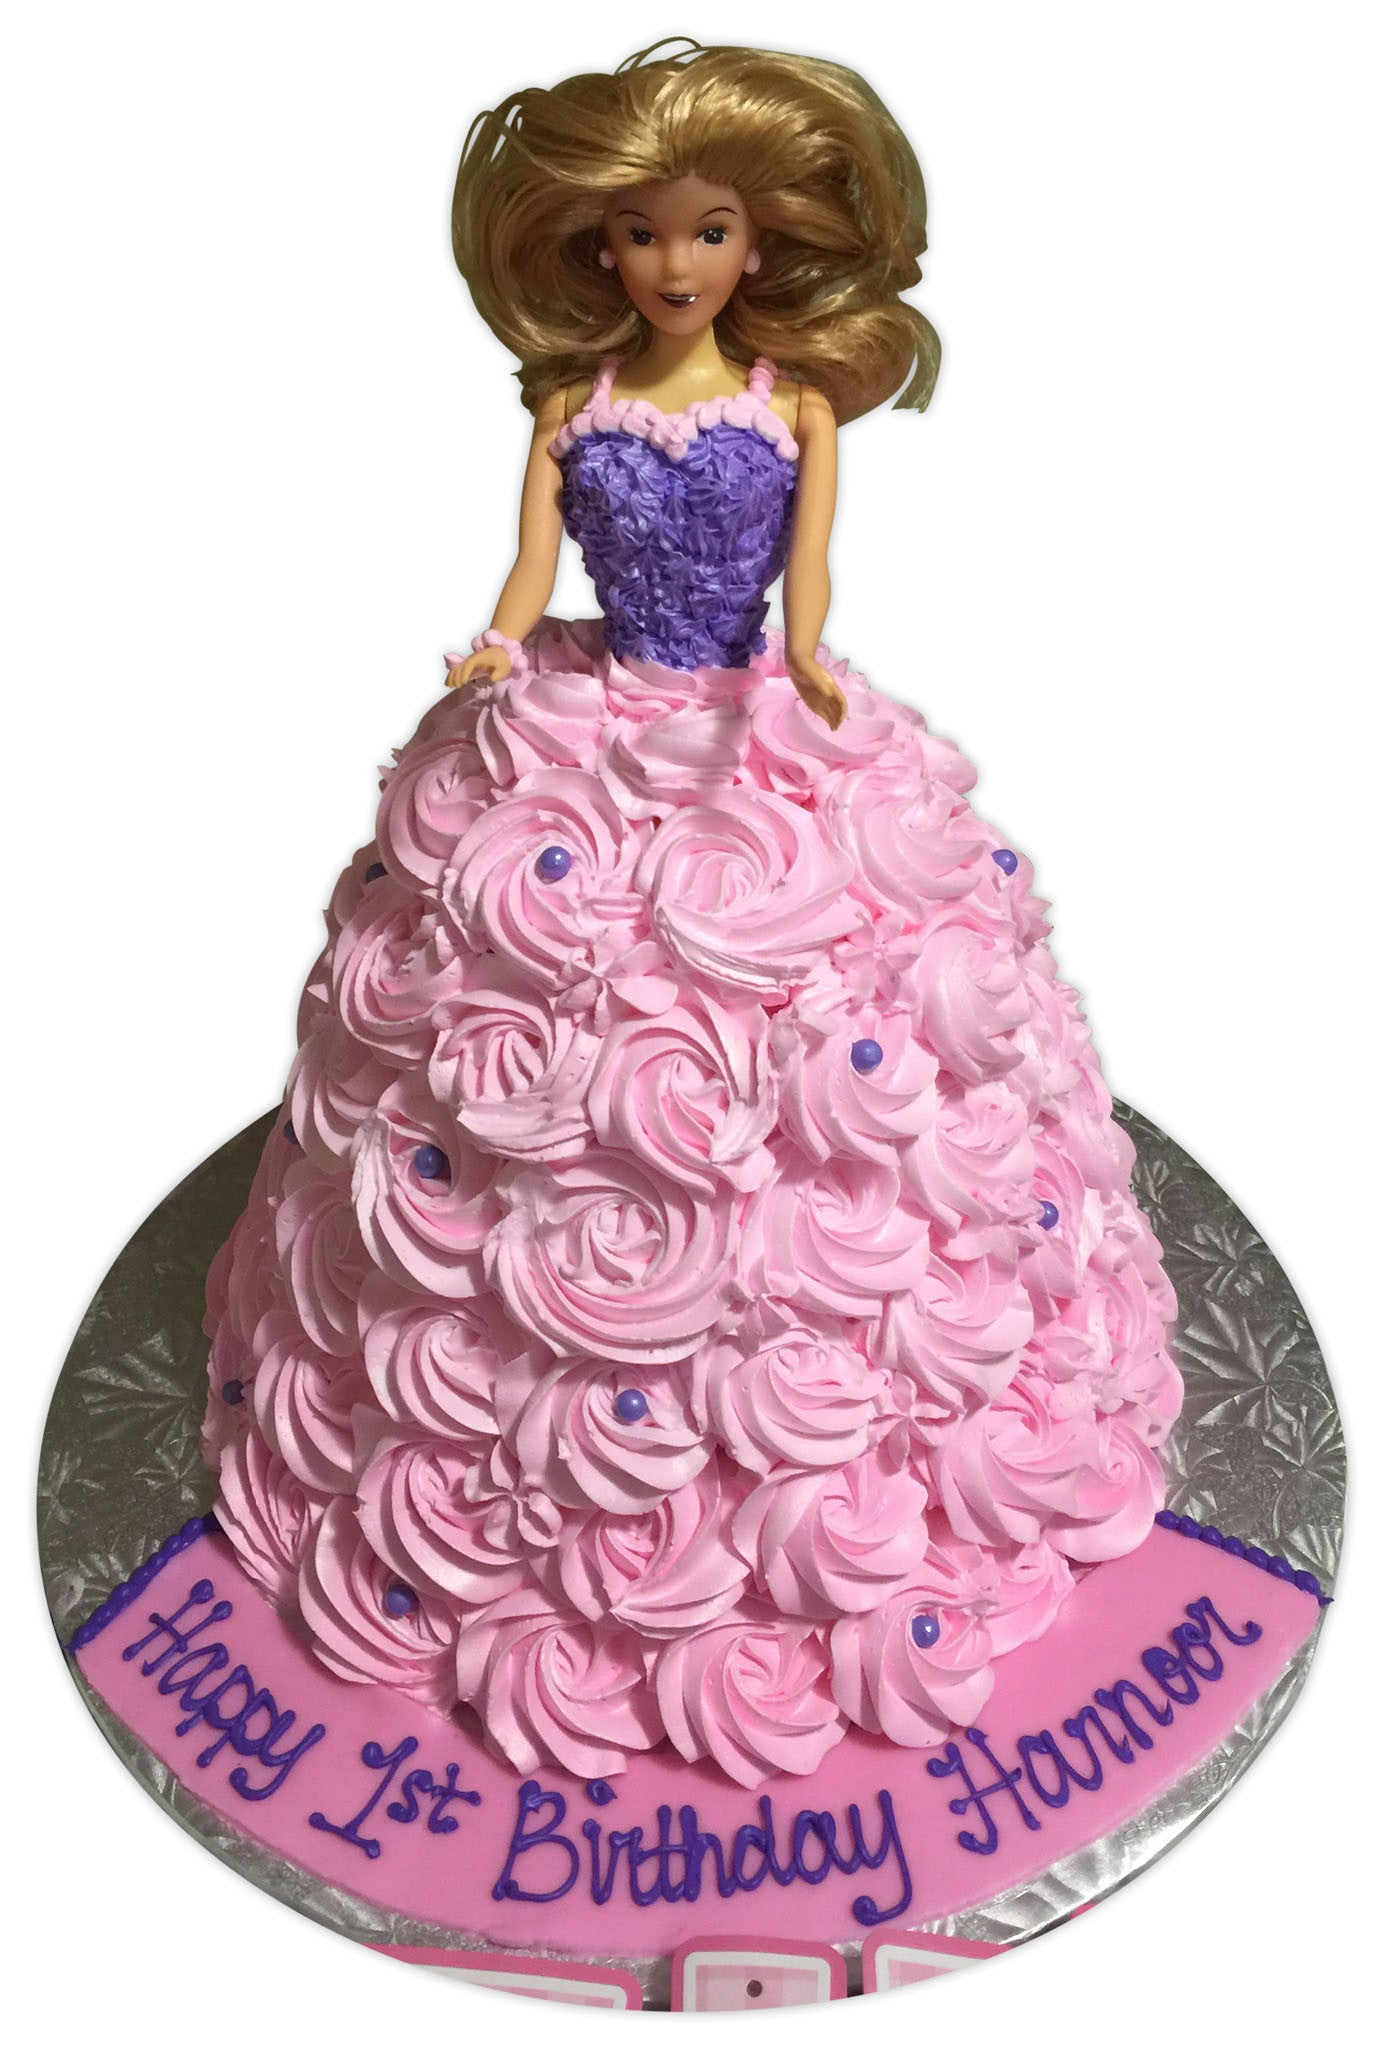 All Birthday Cakes Tagged Old Image Page 3 Rashmis Bakery